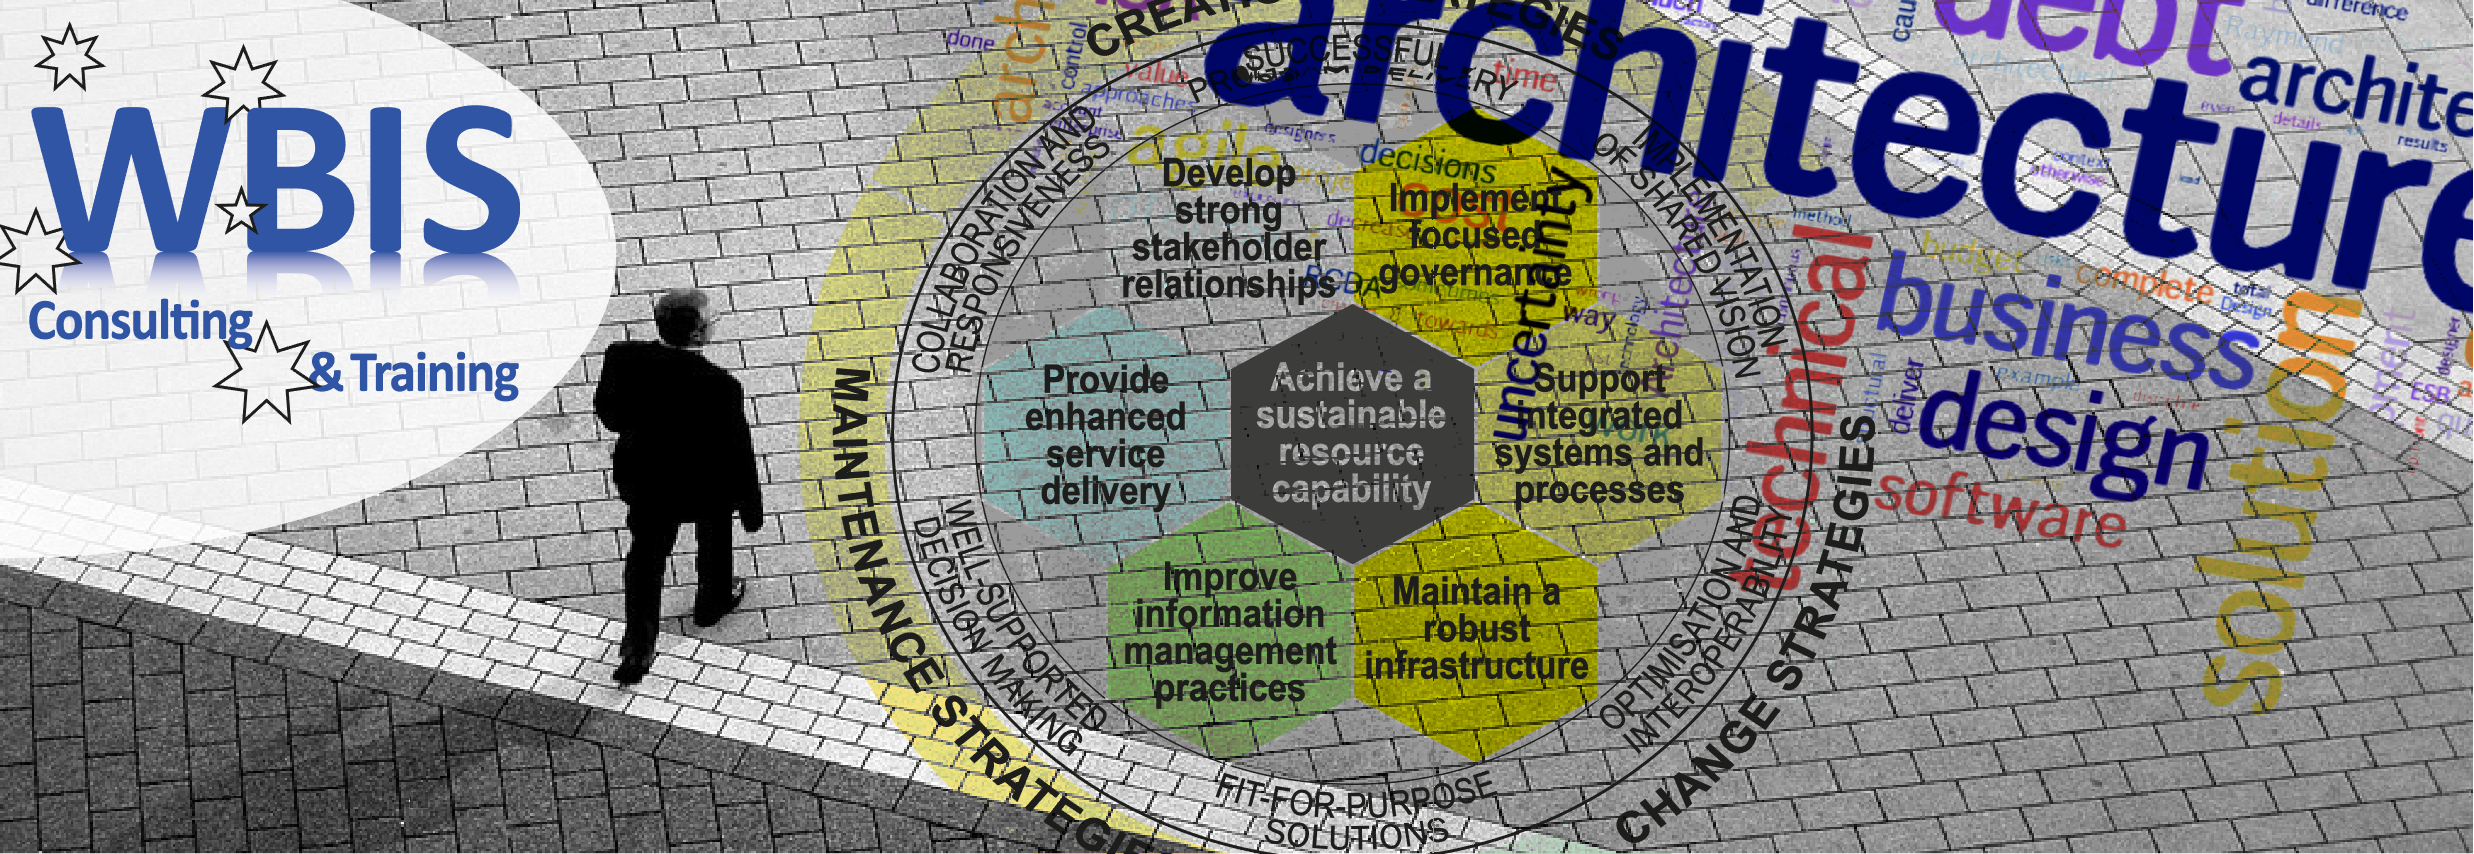 Welcome to your togaf enterprise architecture specialists wbis wbis consulting and training xflitez Choice Image